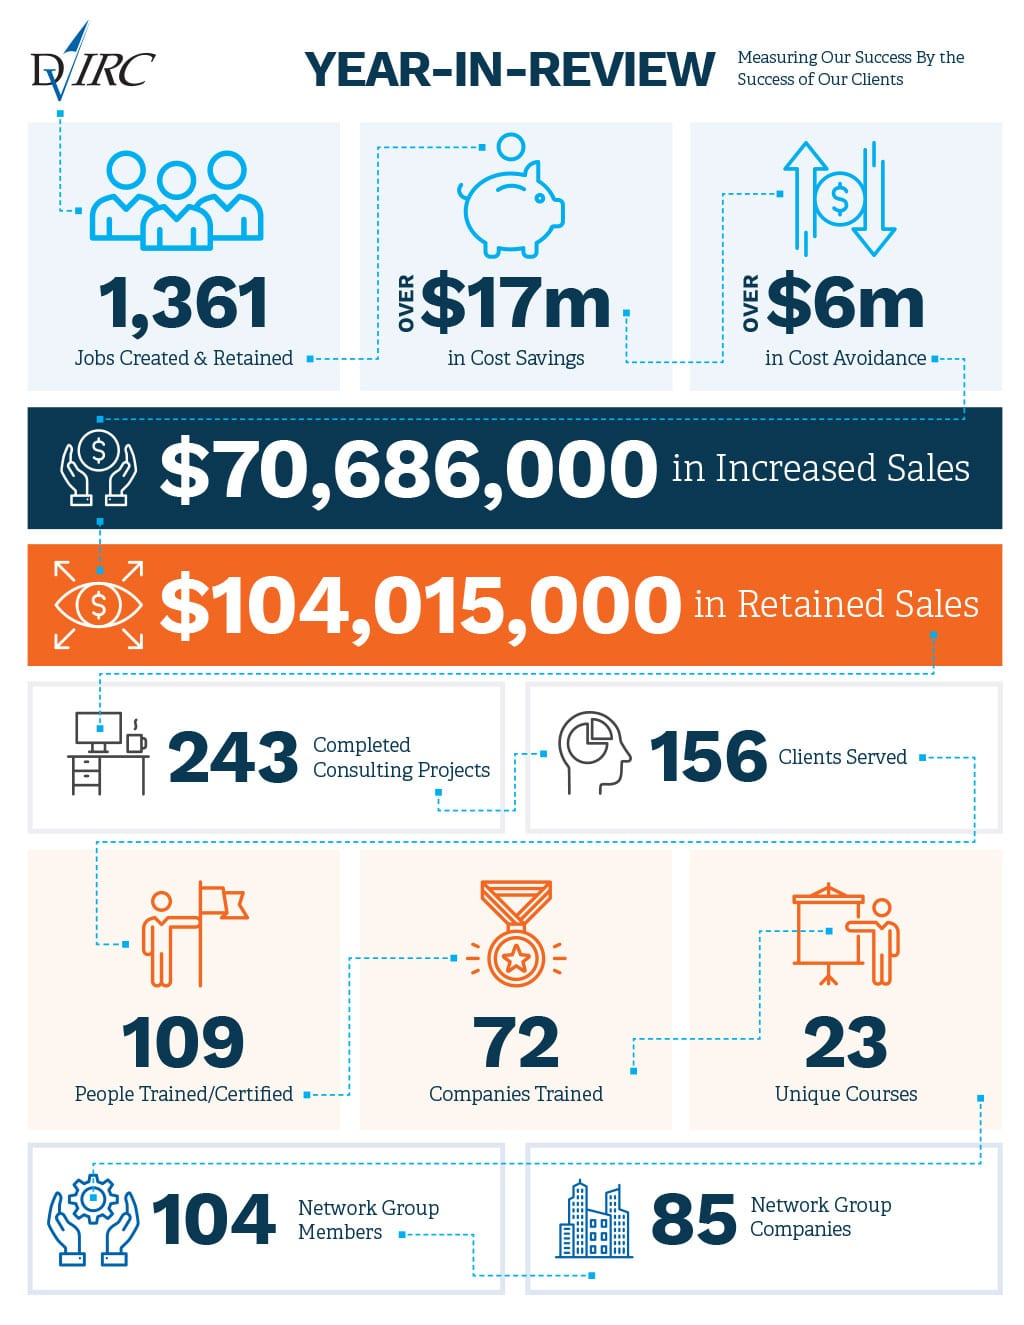 DVIRC 2019 Year In Review Infographic